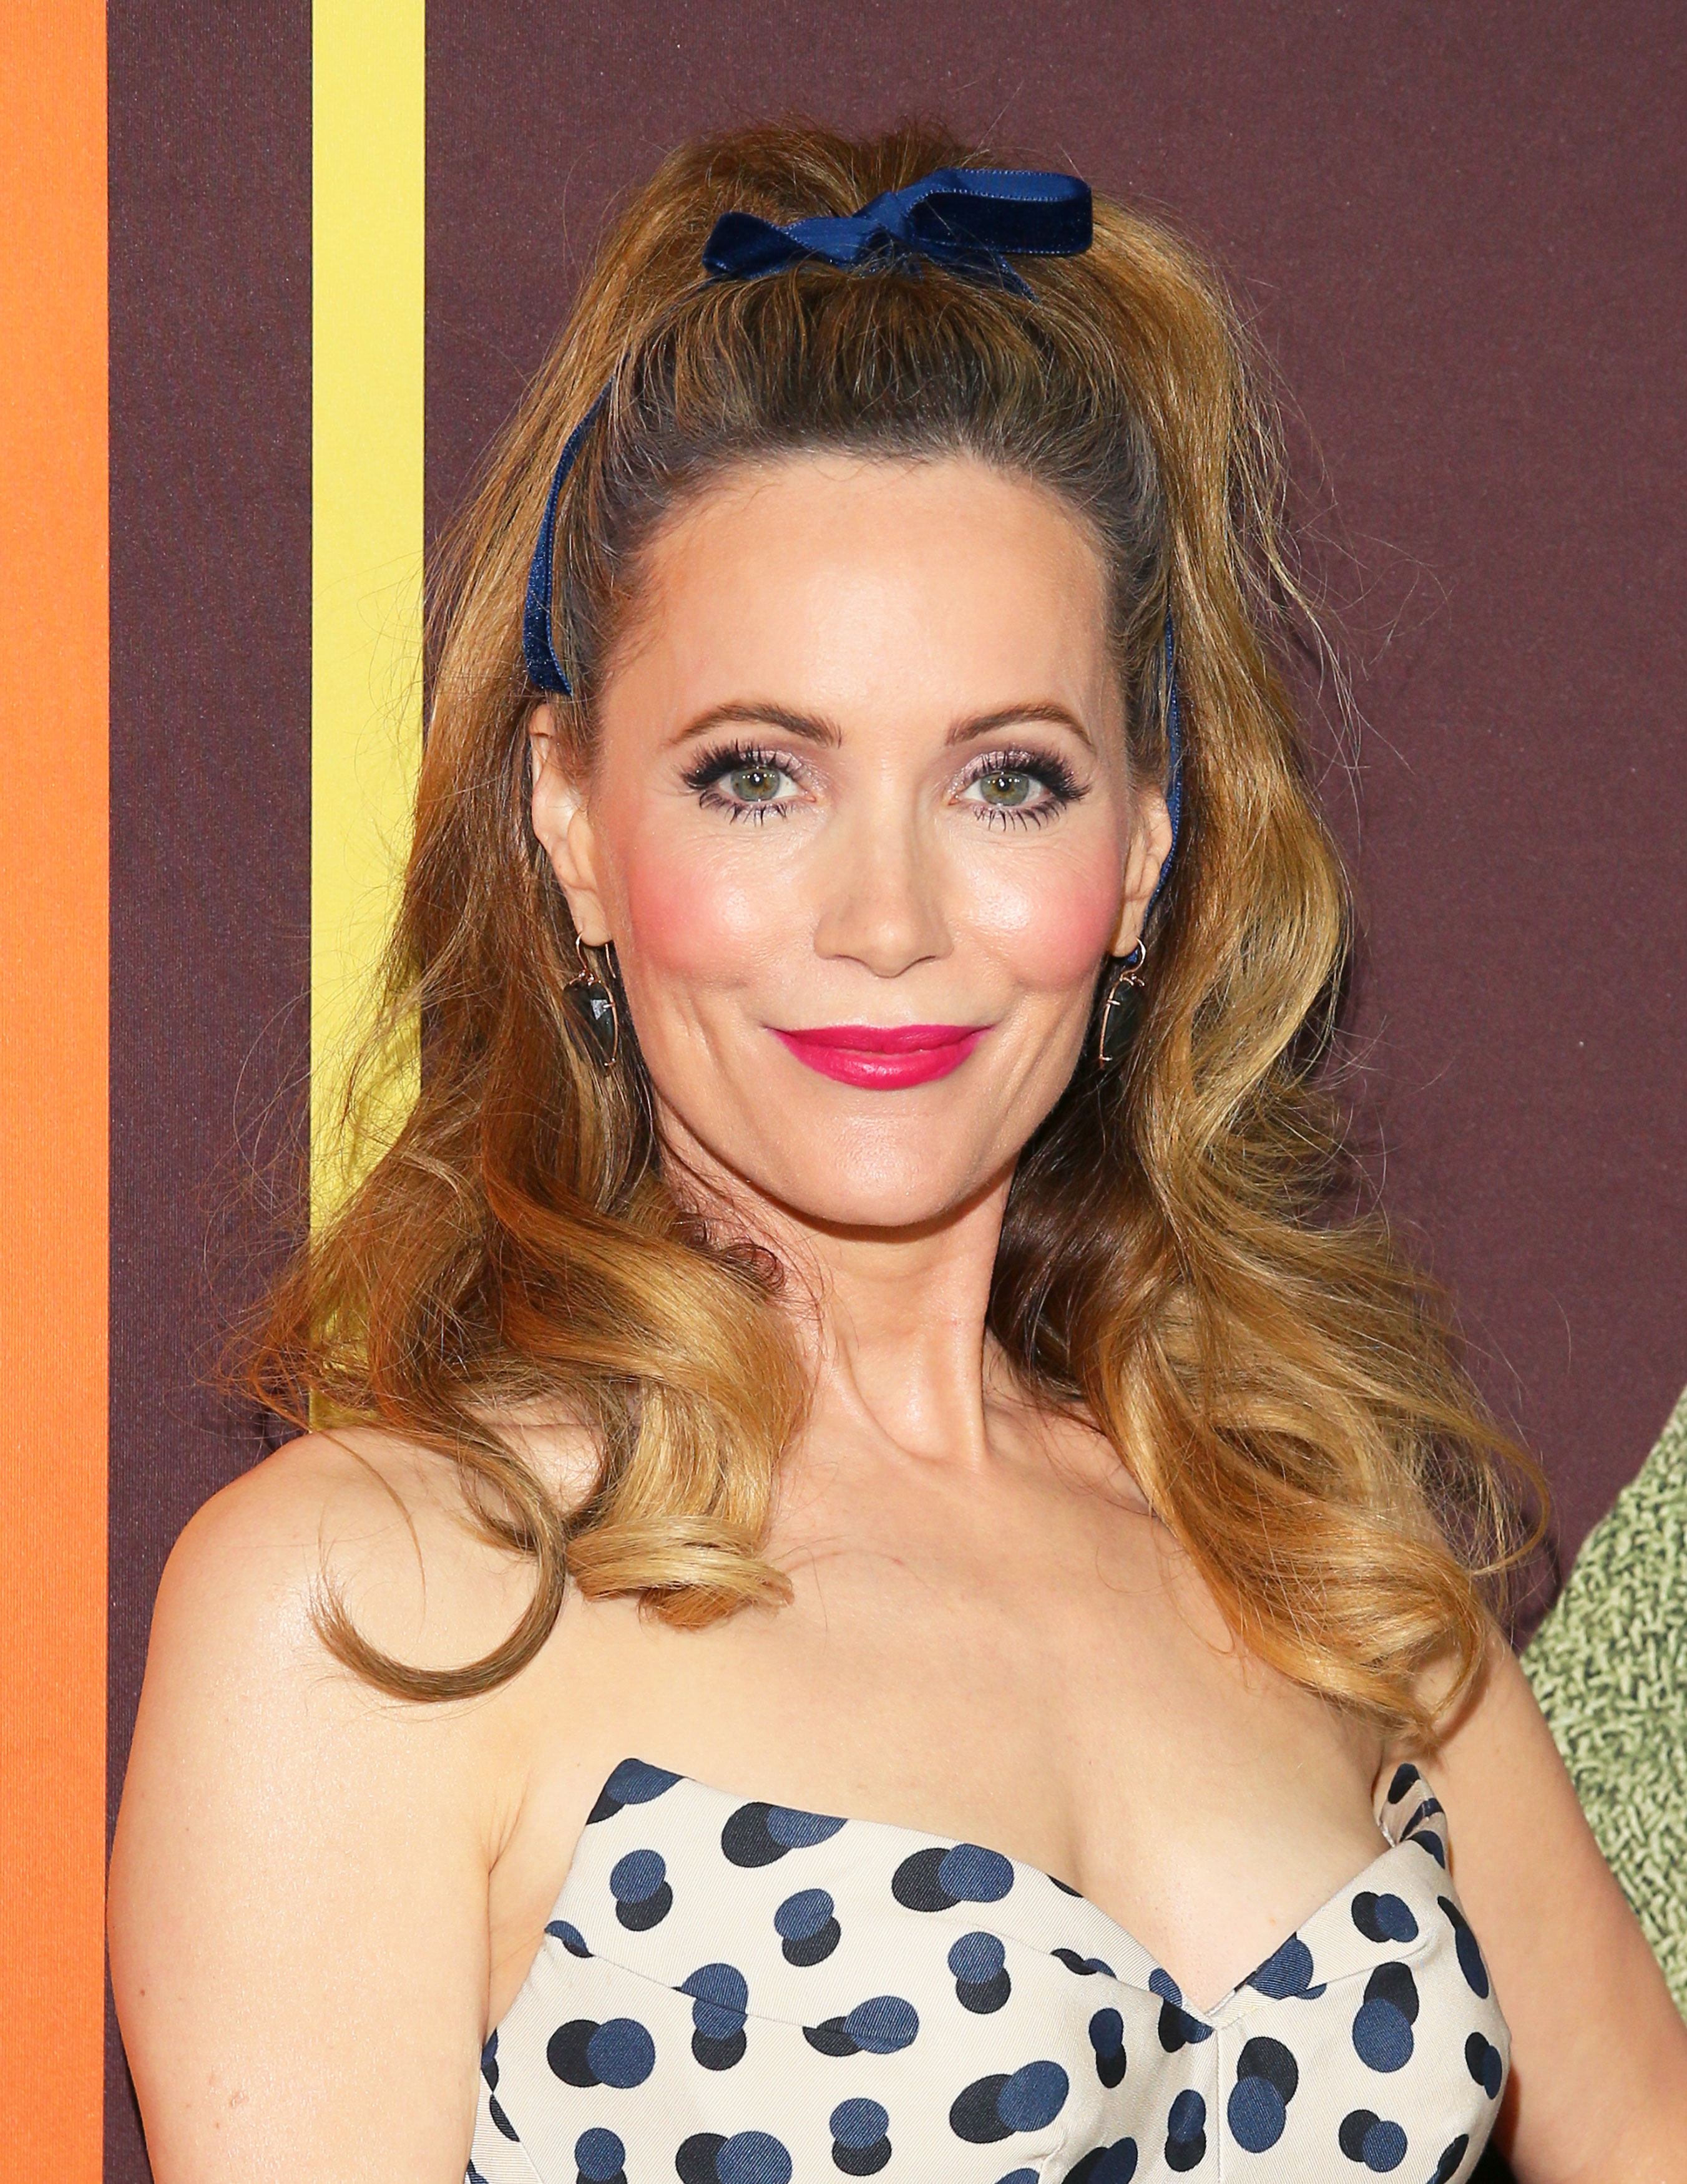 leslie-mann pink lipstick - HOLLYWOOD, CALIFORNIA – DECEMBER 10: Leslie Mann attends Universal Pictures and DreamWorks Pictures' premiere of 'Welcome To Marwen' at ArcLight Hollywood on December 10, 2018 in Hollywood, California. (Photo by JB Lacroix/Getty Images)